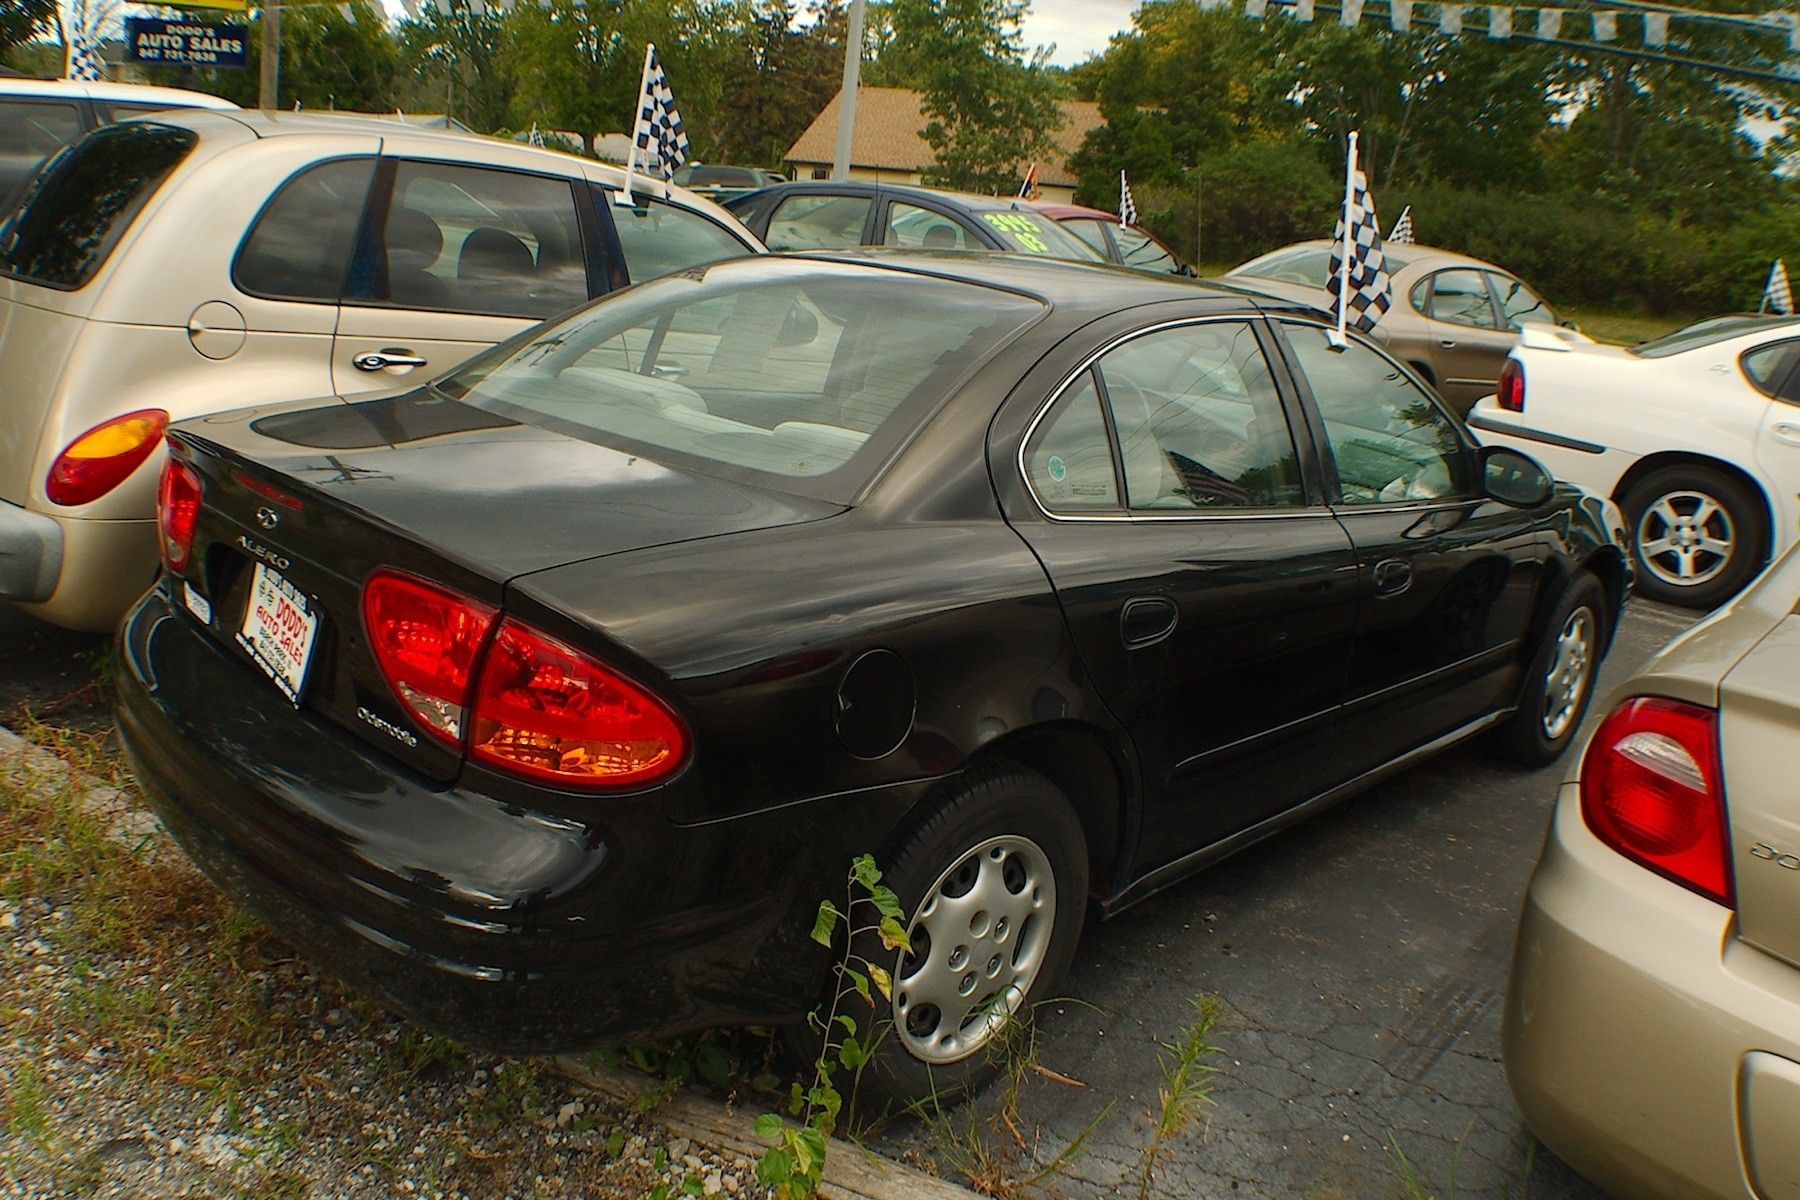 2001 Oldsmobile Alero Black Sedan Used Car Sale Bannockburn Barrington Beach Park